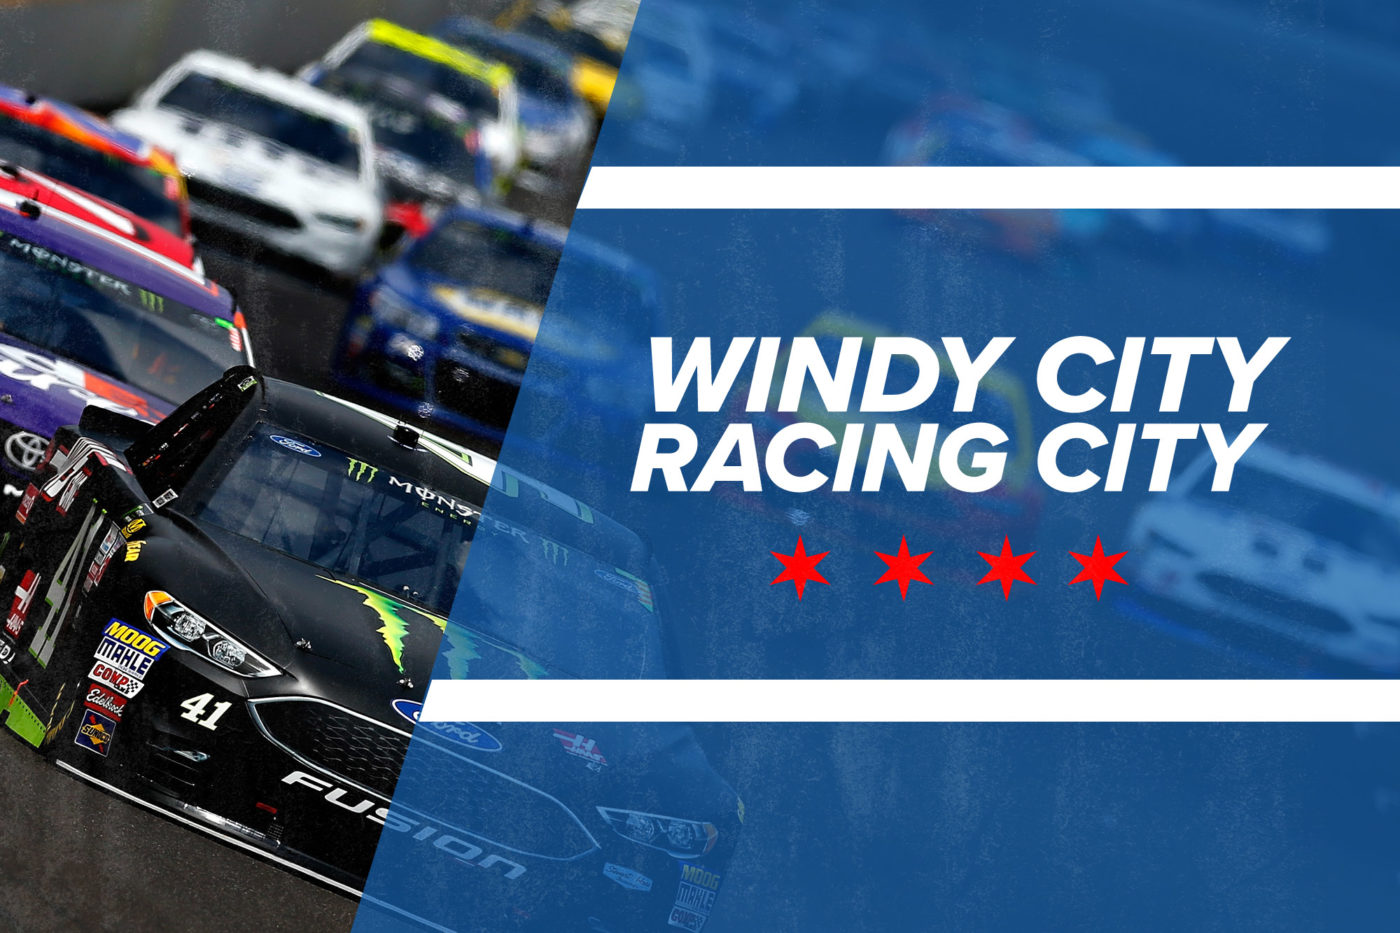 Windy City, Racing City Campaign